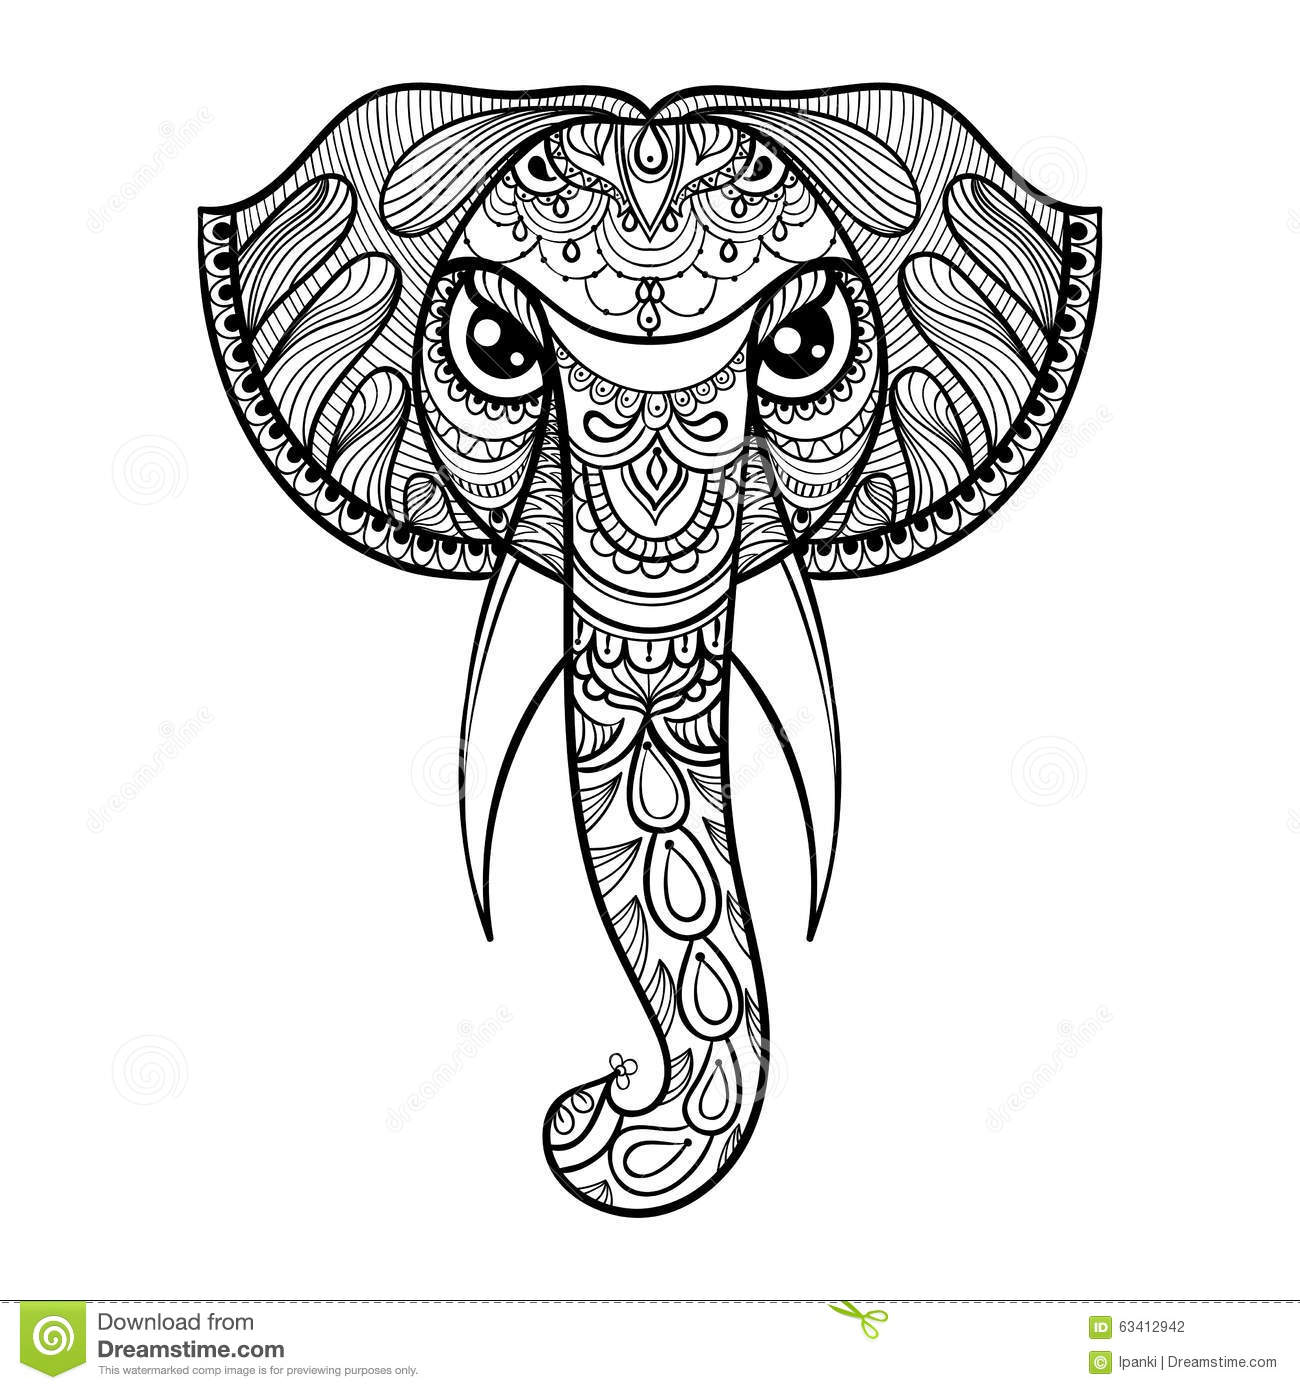 Stress Coloring Pages Animals : Vector ornamental wolf with dreamcatcher ethnic